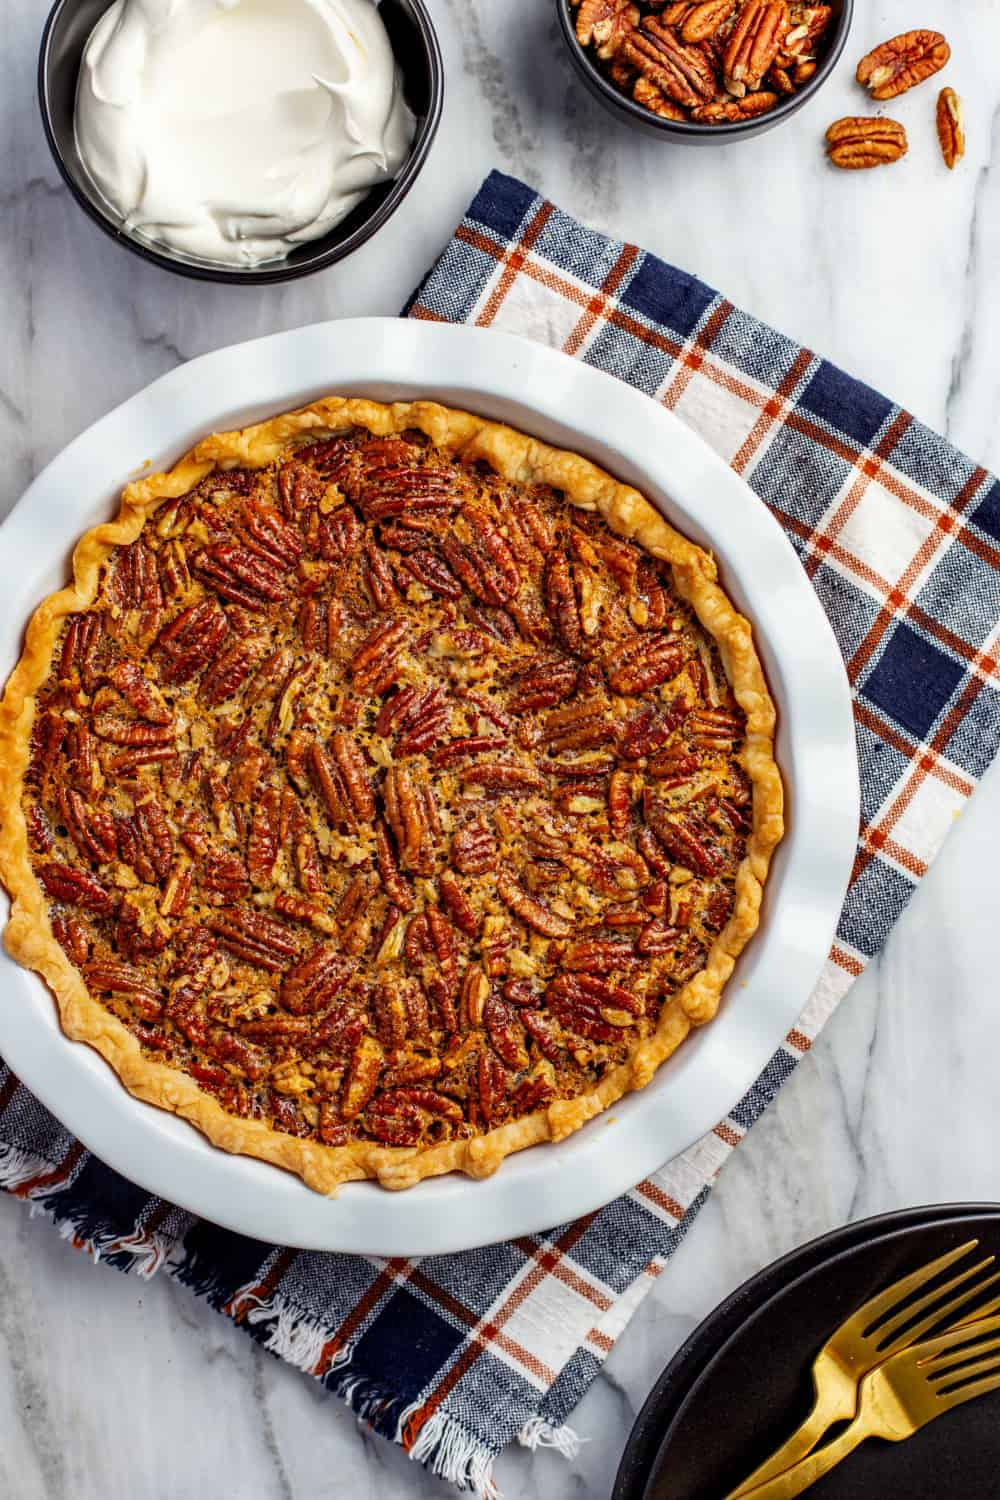 Baked classic pecan pie in a white pie dish